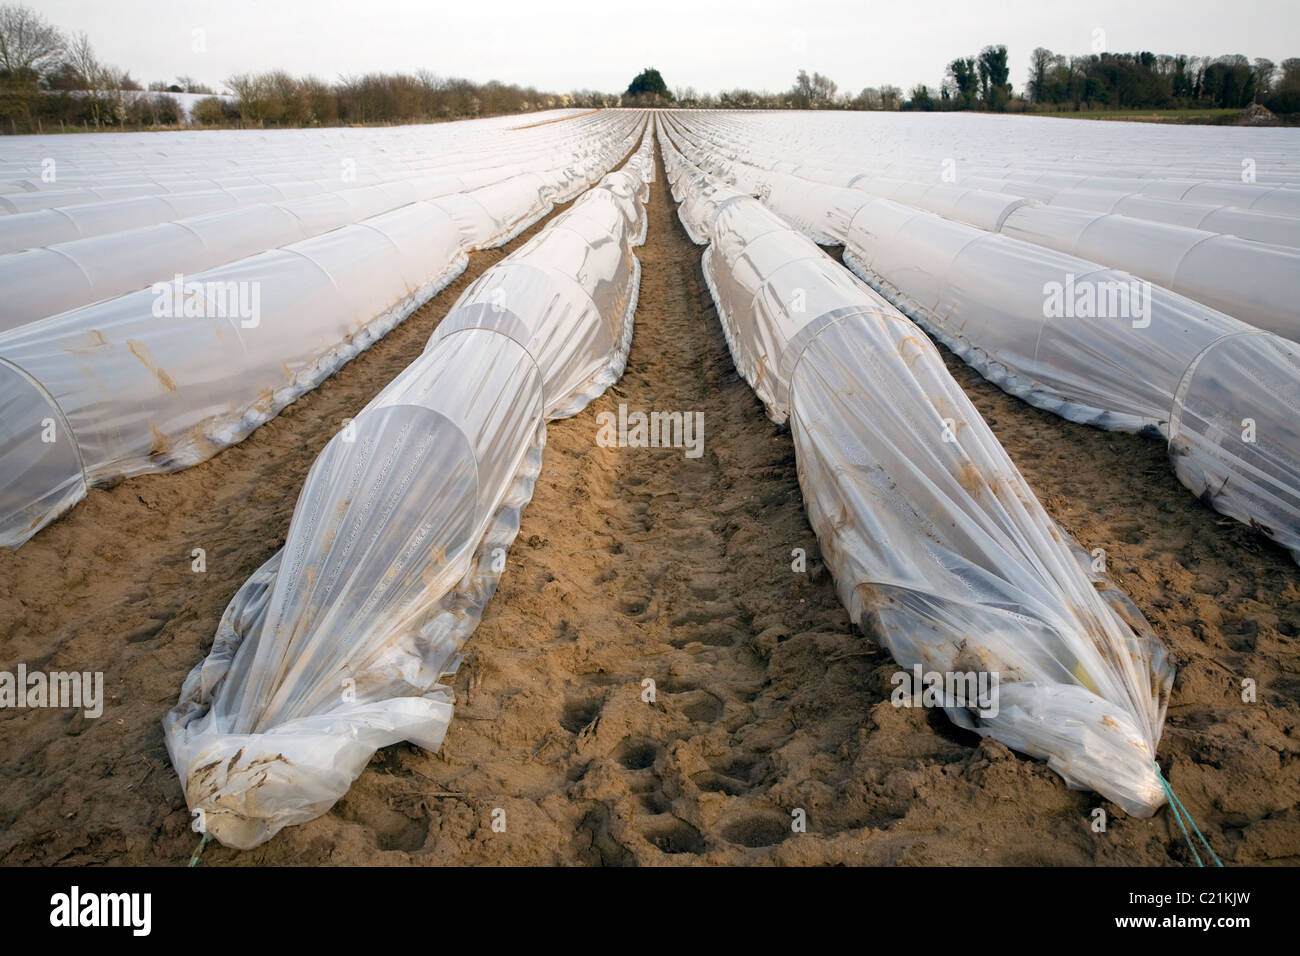 Polythene Tunnels Stock Photos Amp Polythene Tunnels Stock